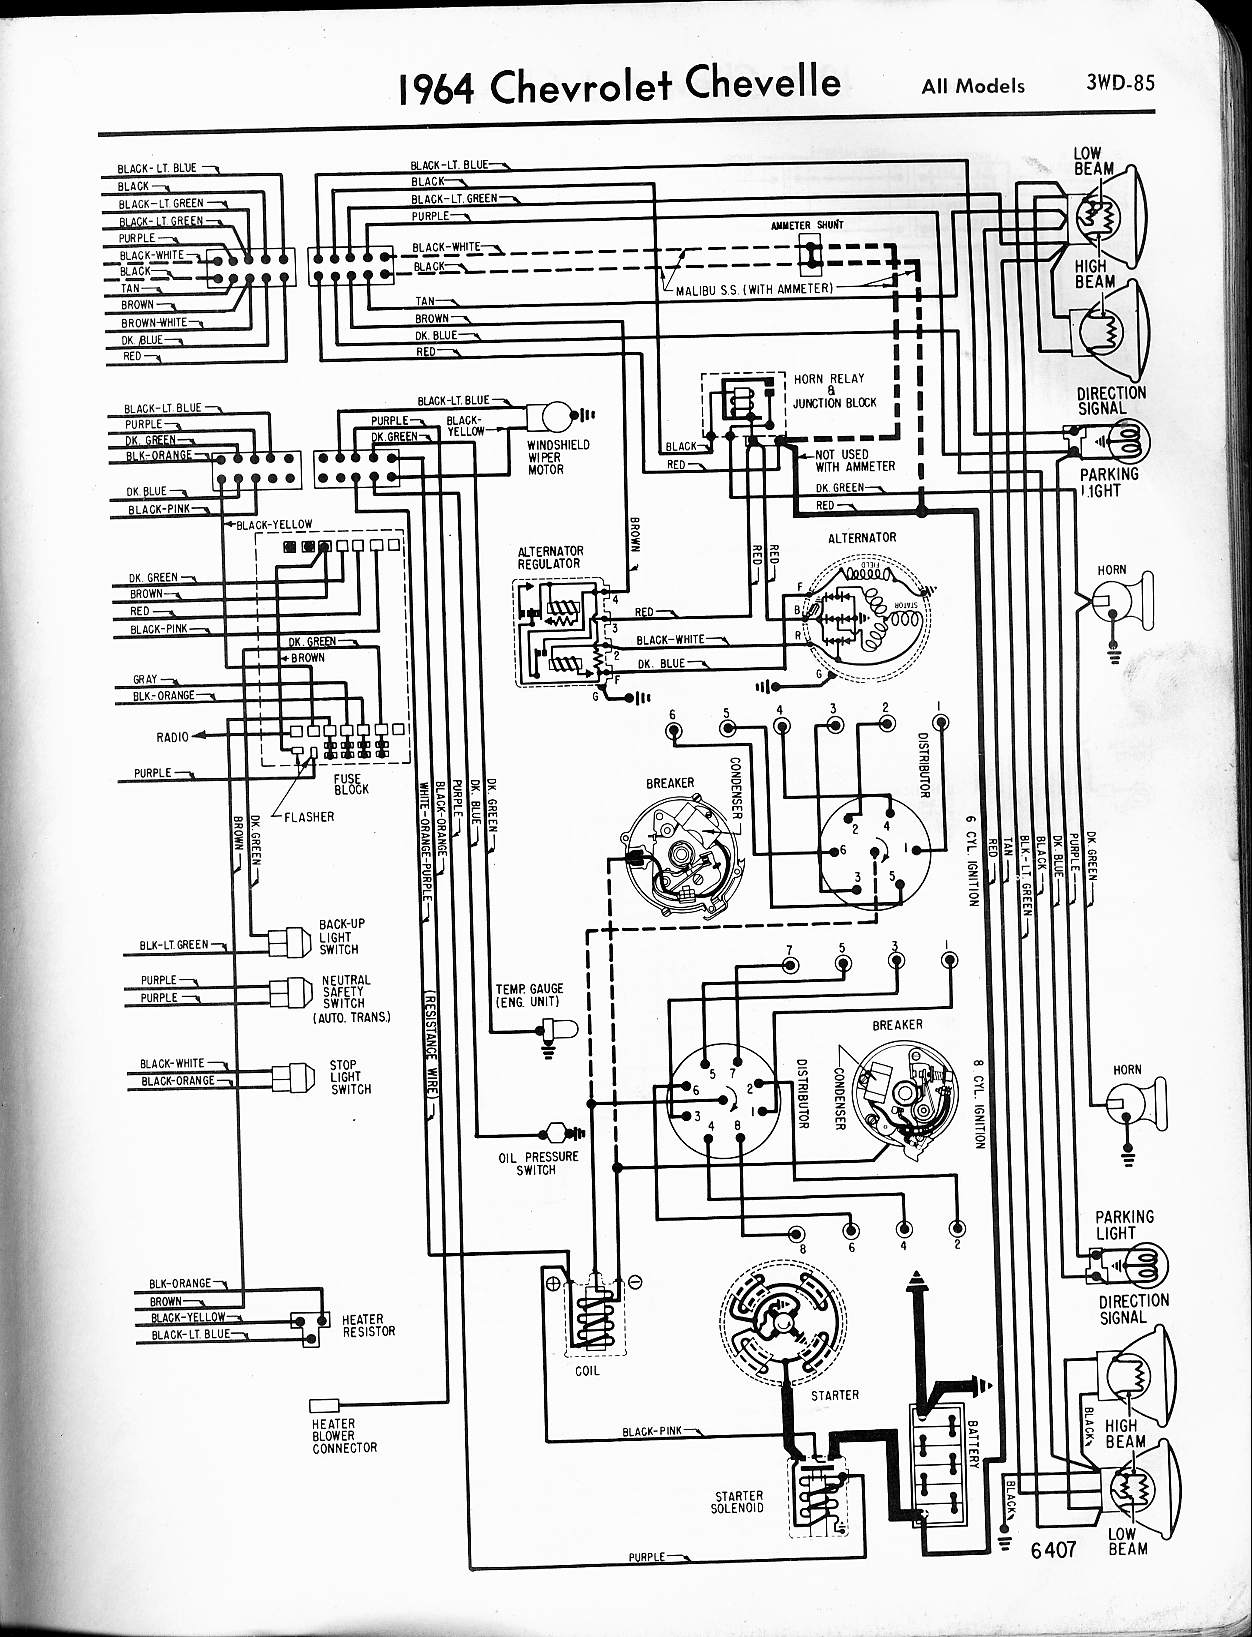 64_ChevelleA 64 falcon wiring diagram 64 comet ignition wiring \u2022 wiring 1964 impala wiring diagram for ignition at webbmarketing.co